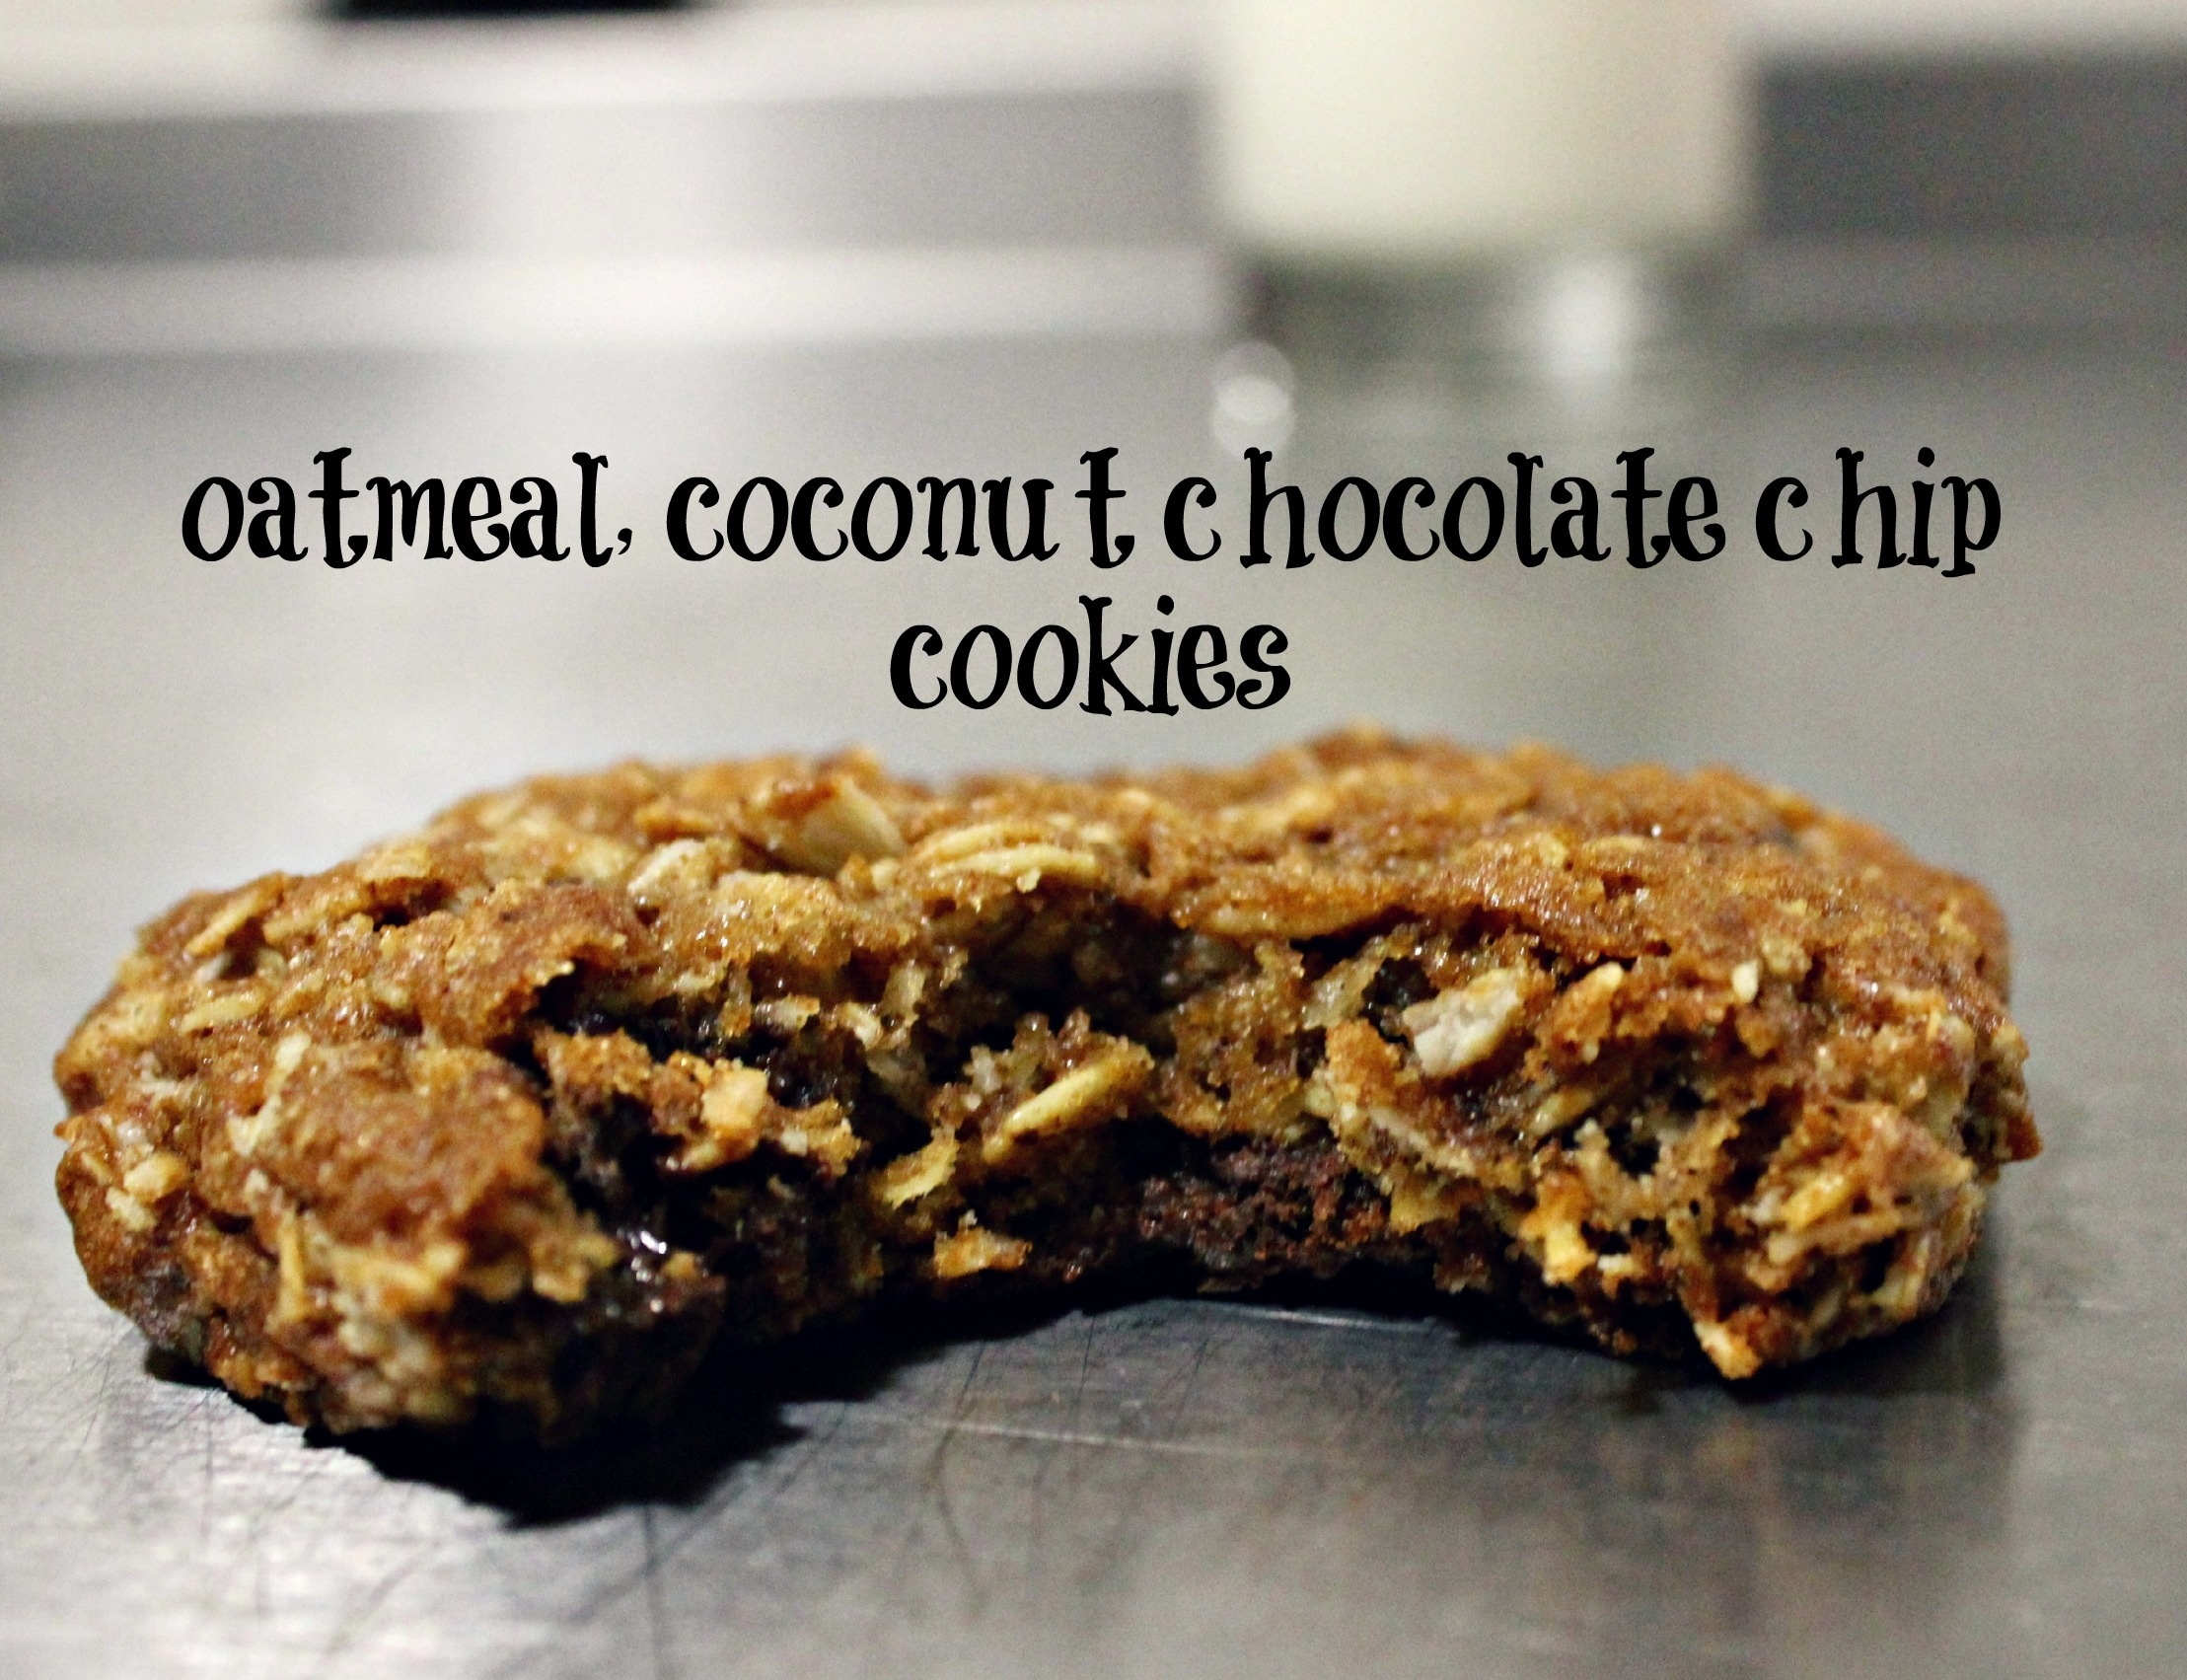 oatmeal, coconut, chocolate-chip cookies